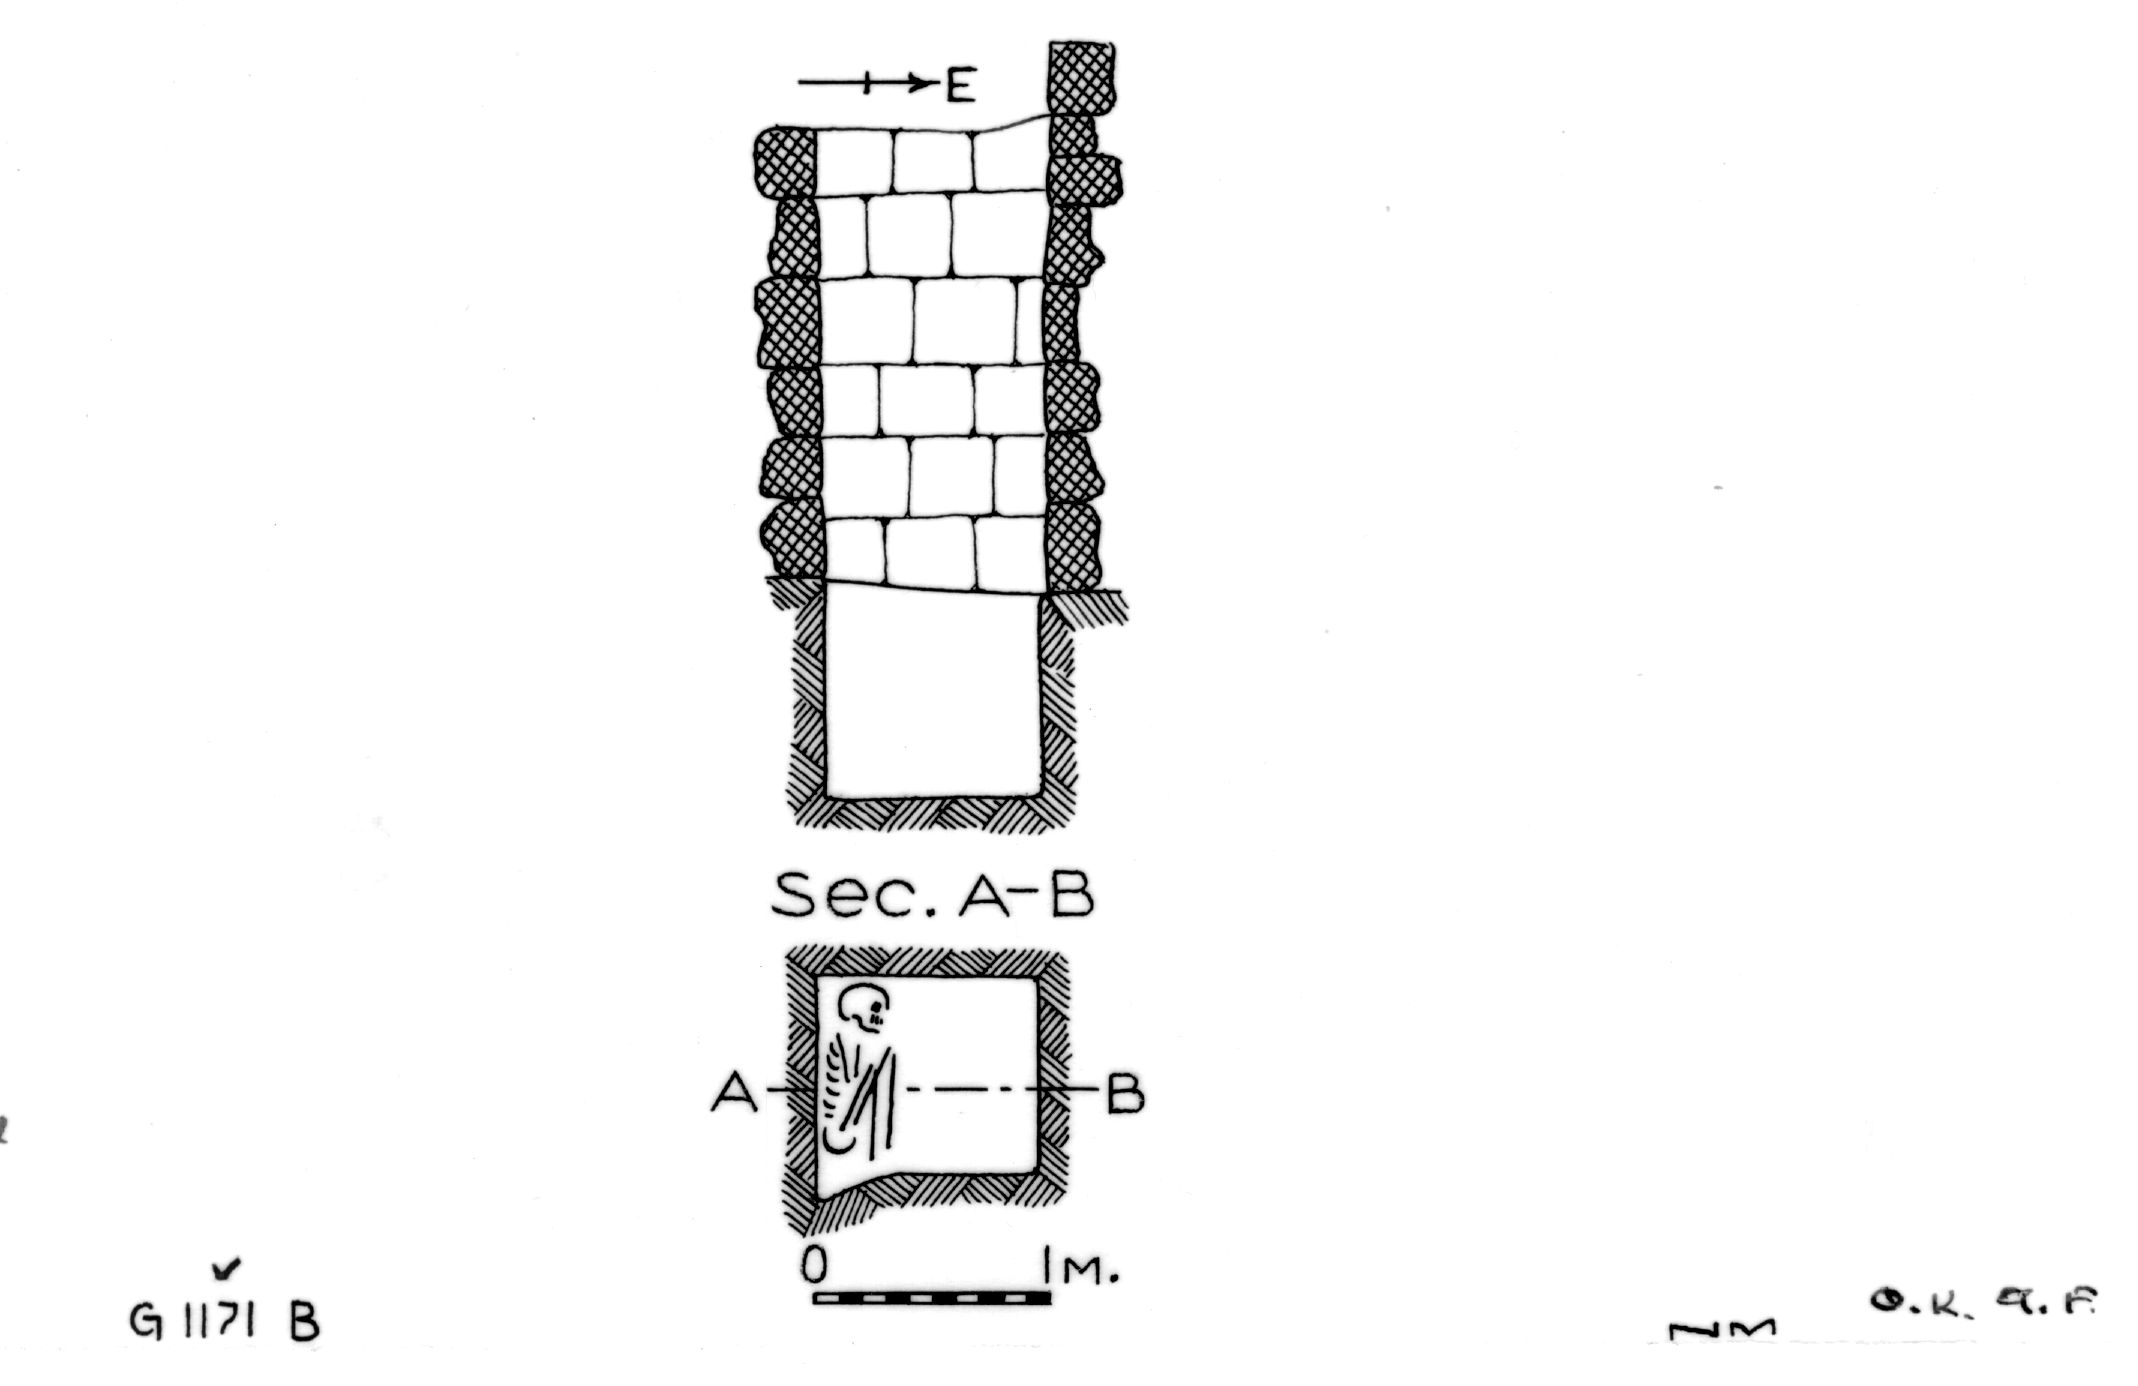 Maps and plans: G 1171, Shaft B